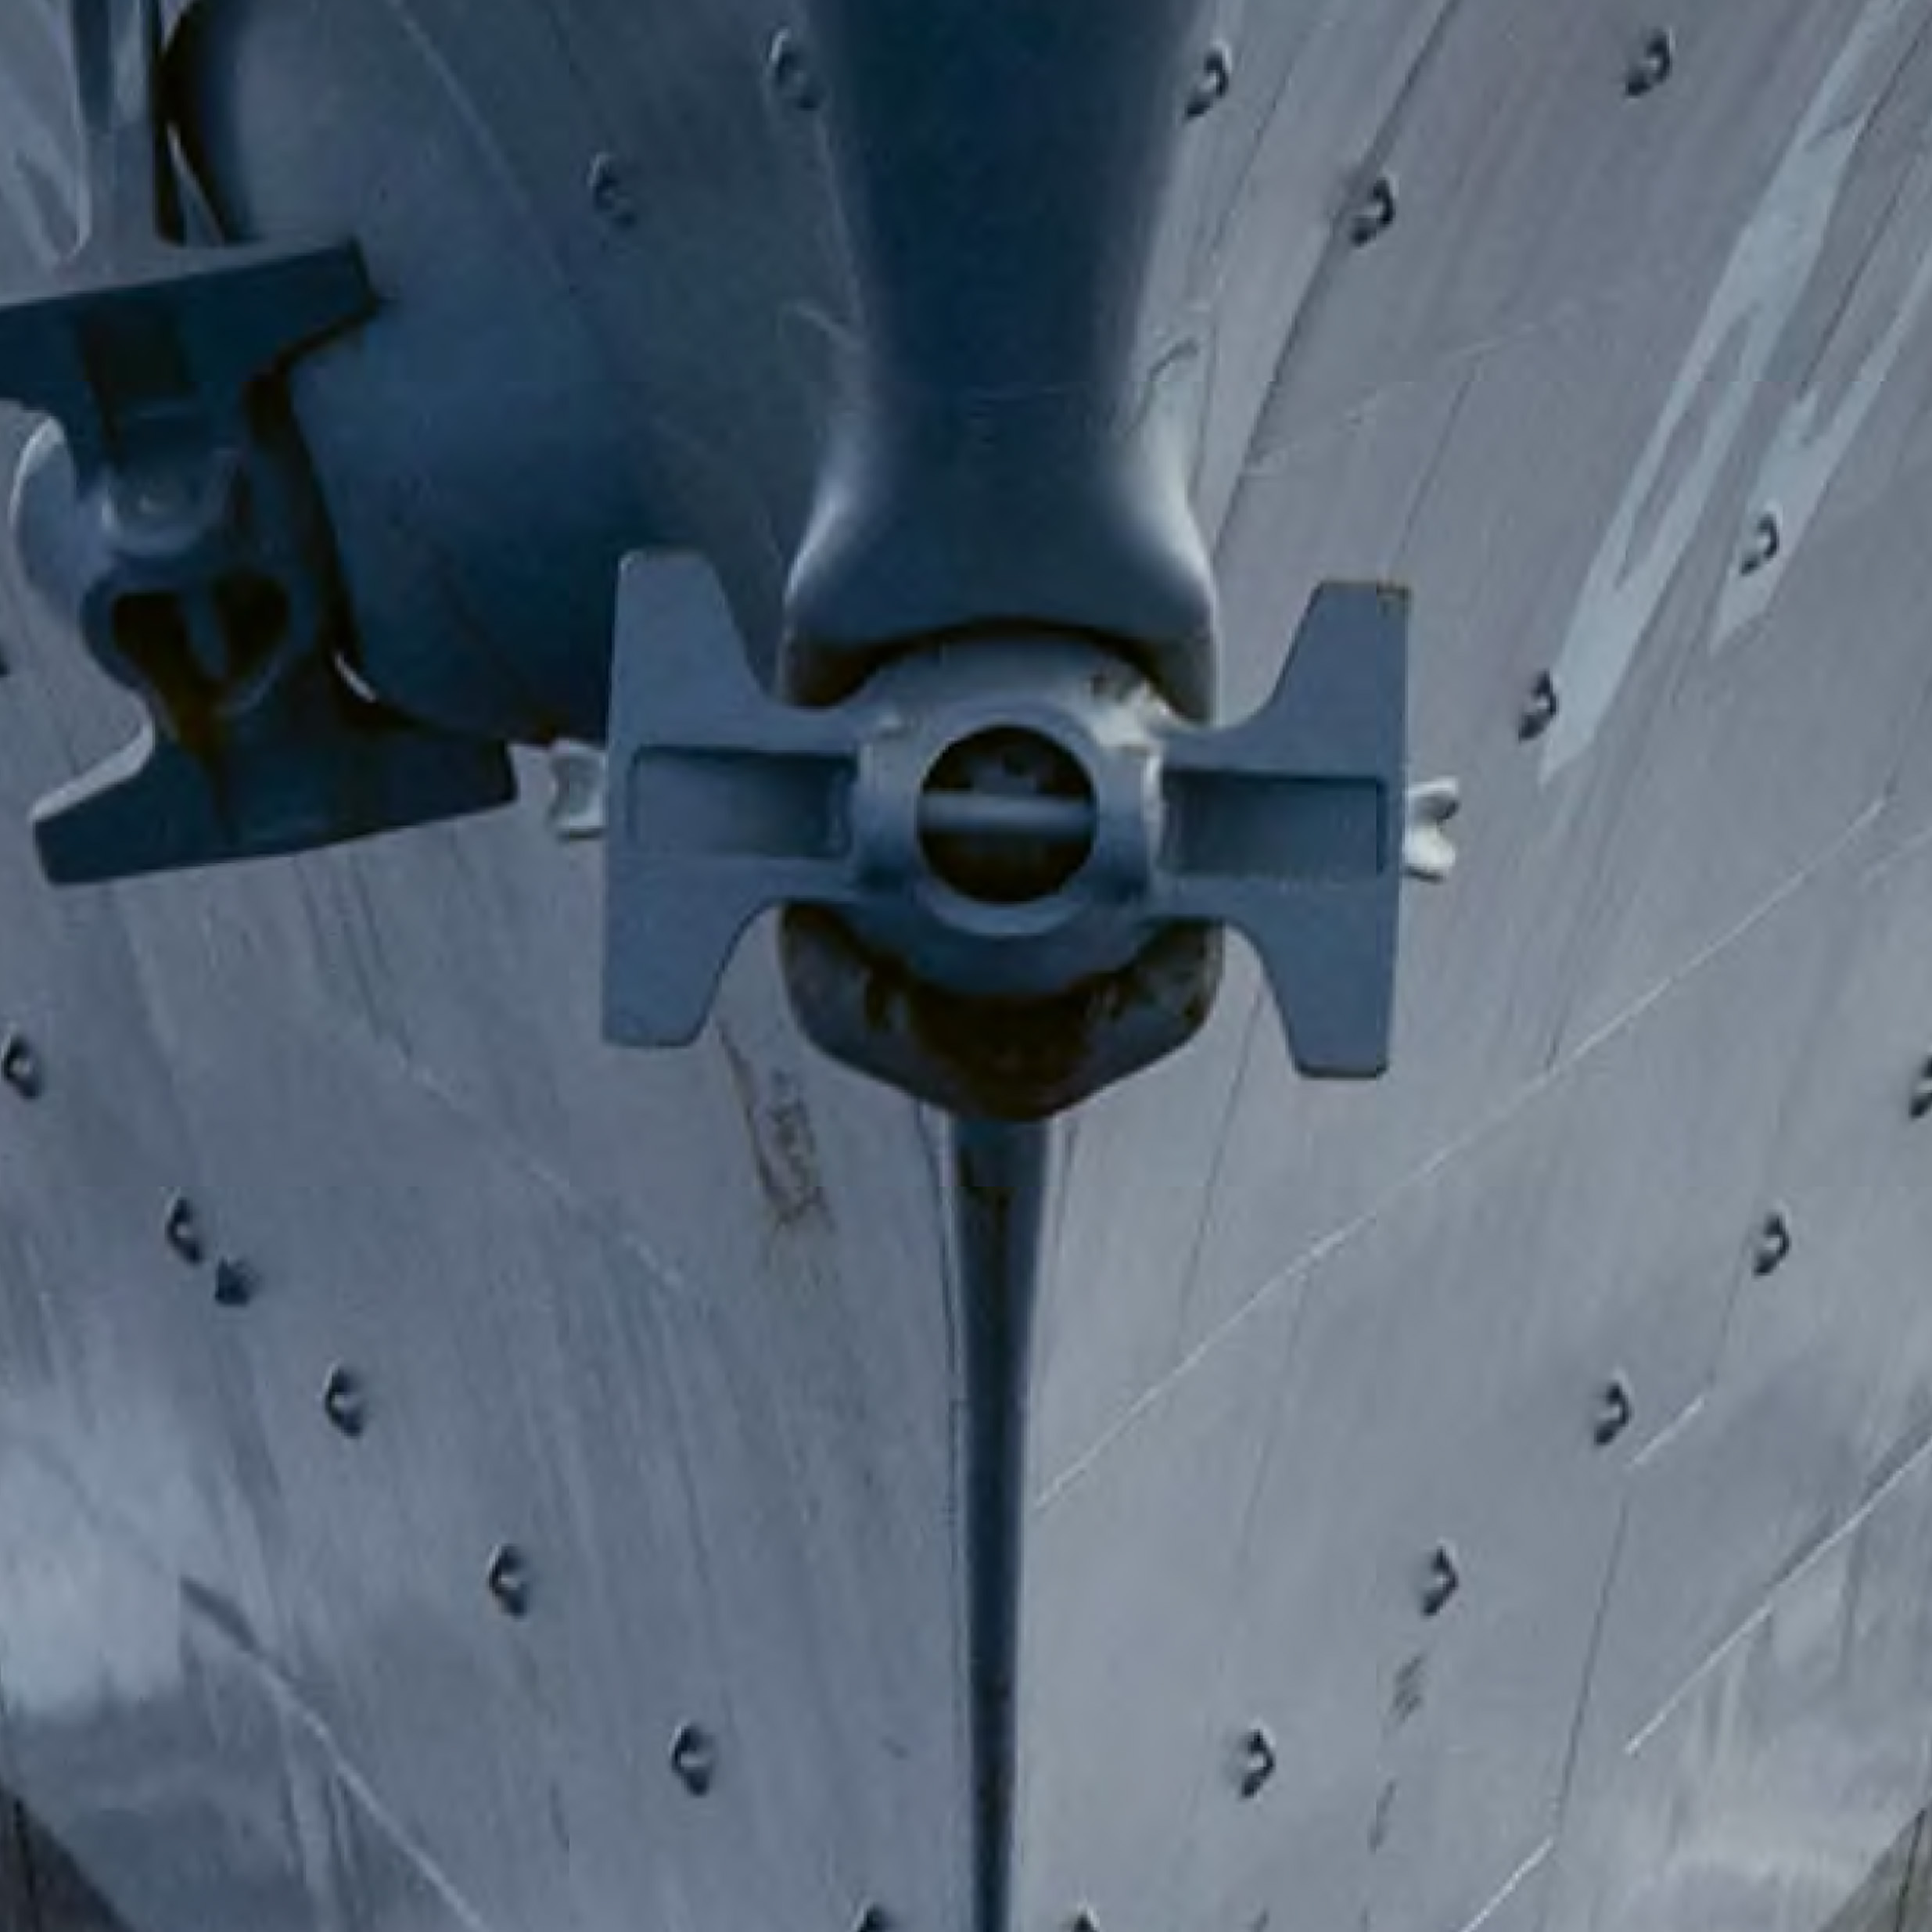 Close up image of Ship propeller